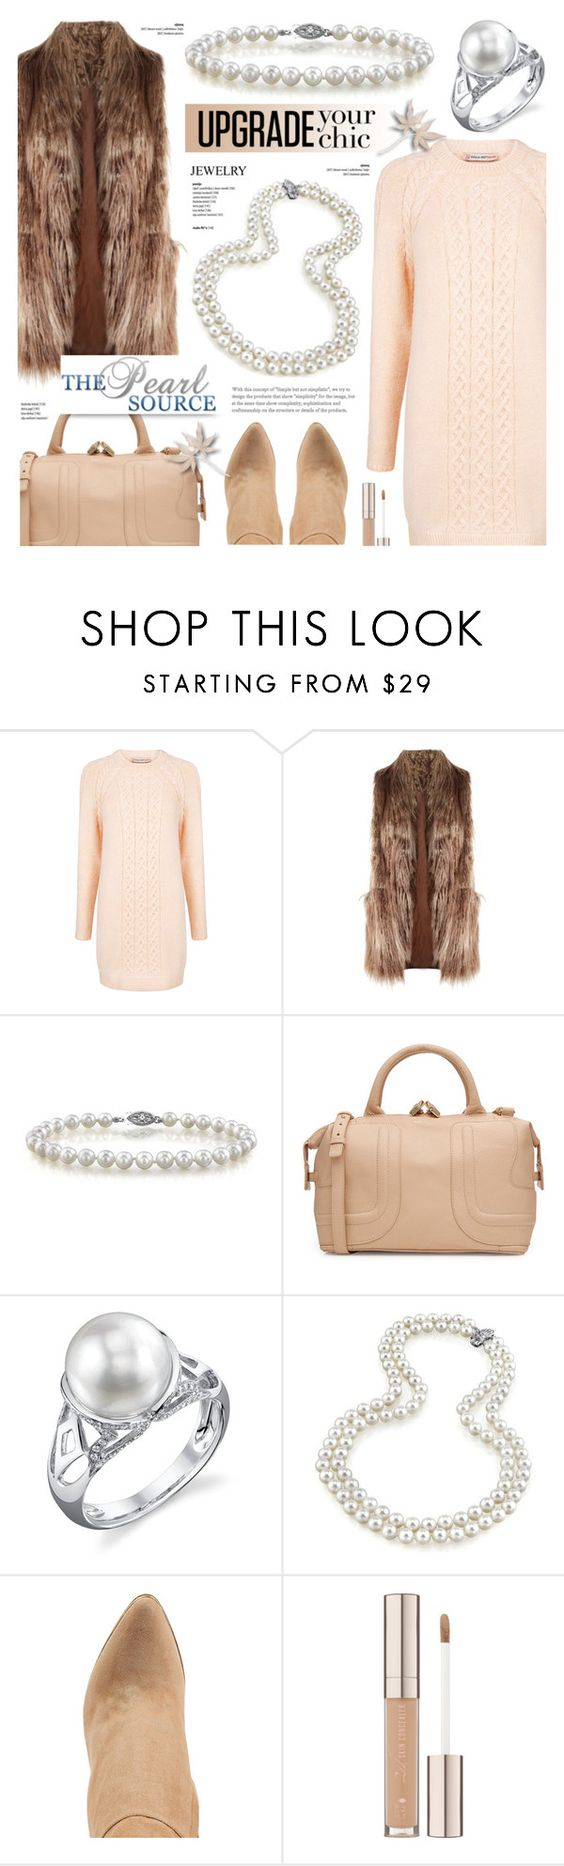 The Pearl Source 93 by anyasdesigns on Polyvore featuring Paul & Joe Sister, Related, Balmain and See by Chloé